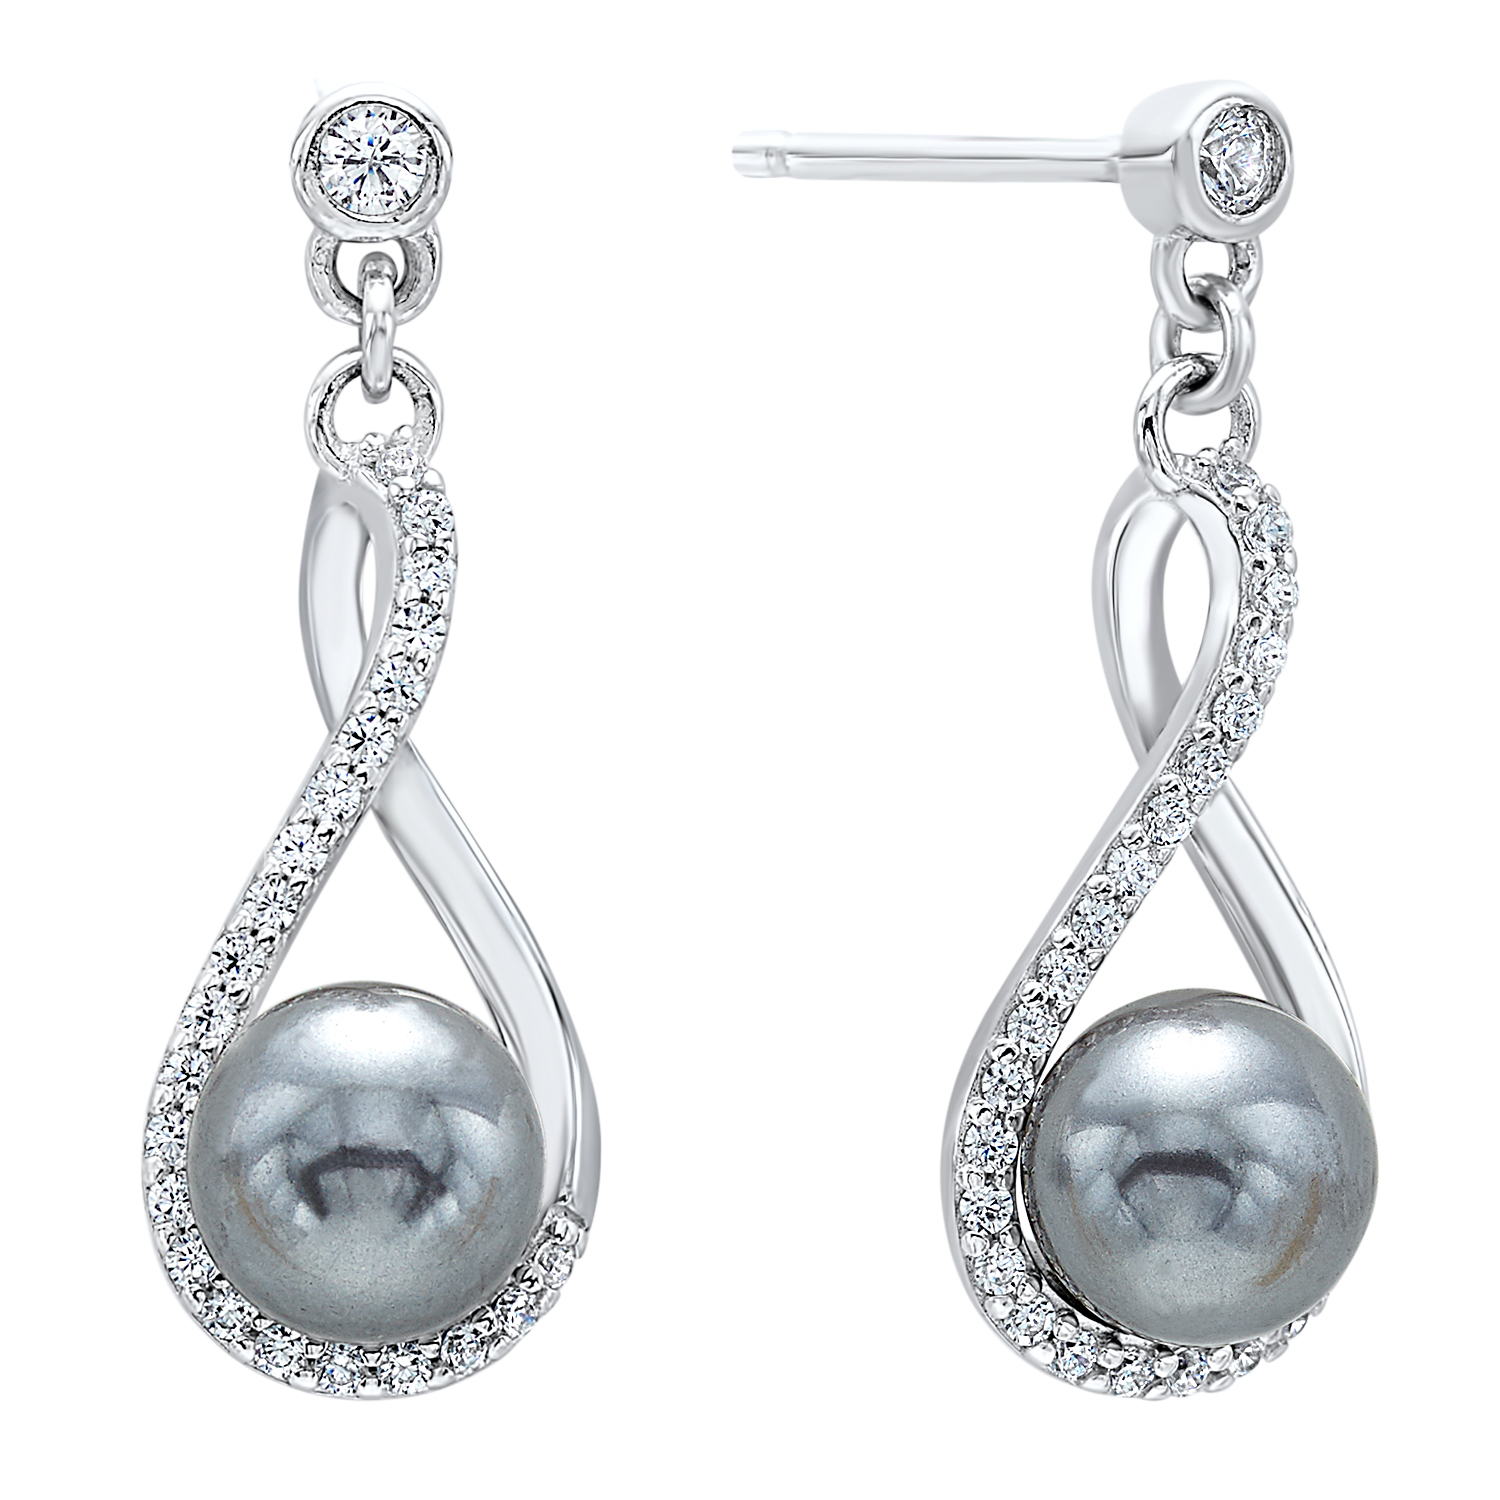 Shell Pearl Drop Earrings in Sterling Silver by Gems One